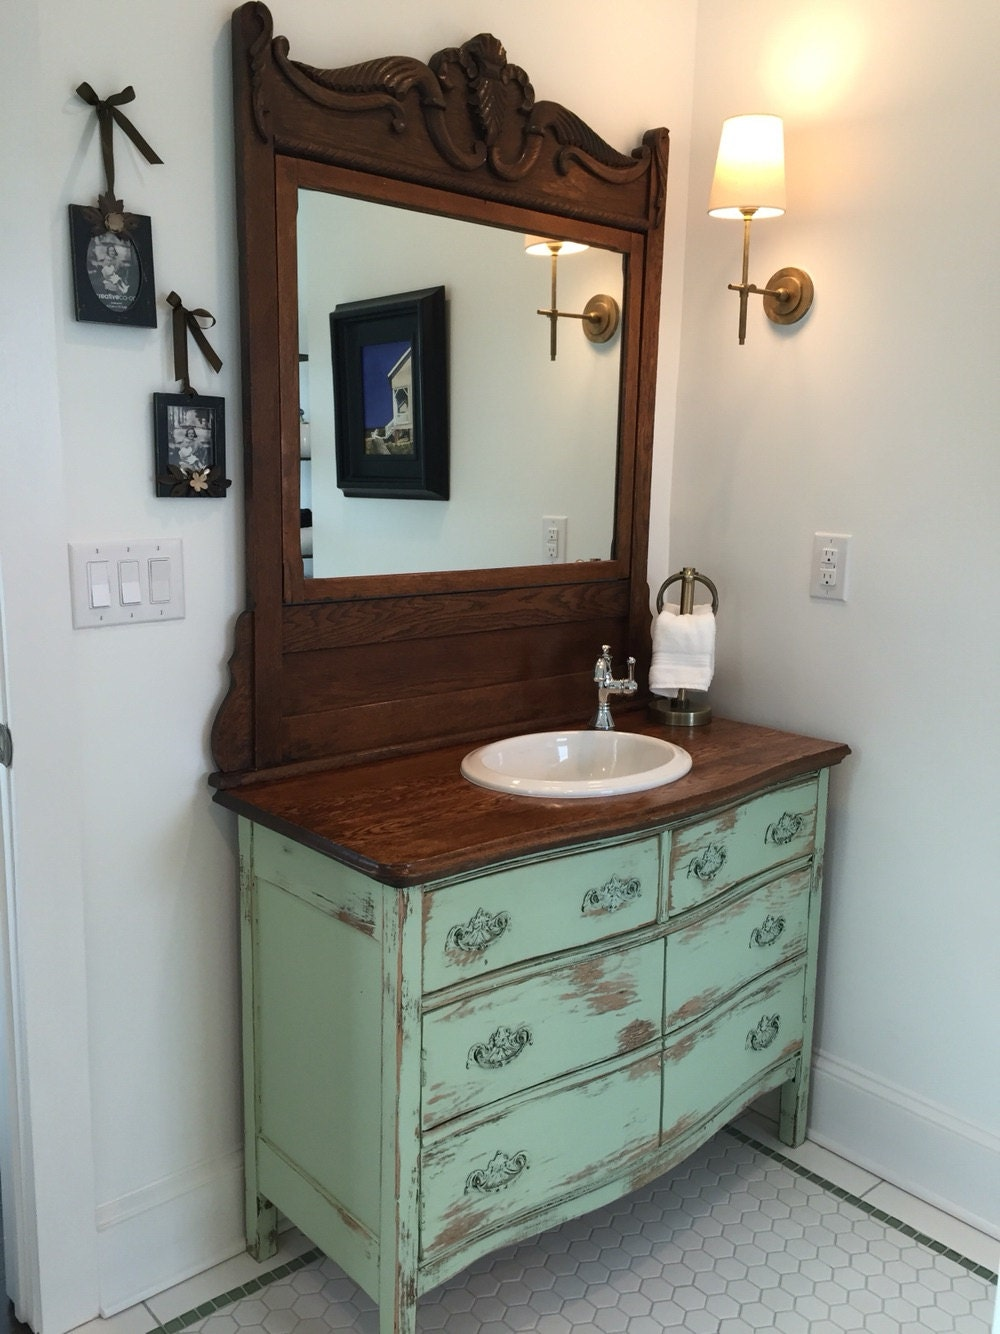 Used Bathroom Vanity Cabinets White Mdf Bathroom Cabinet: BATHROOM VANITY From Antique Dresser! We Find, Restore